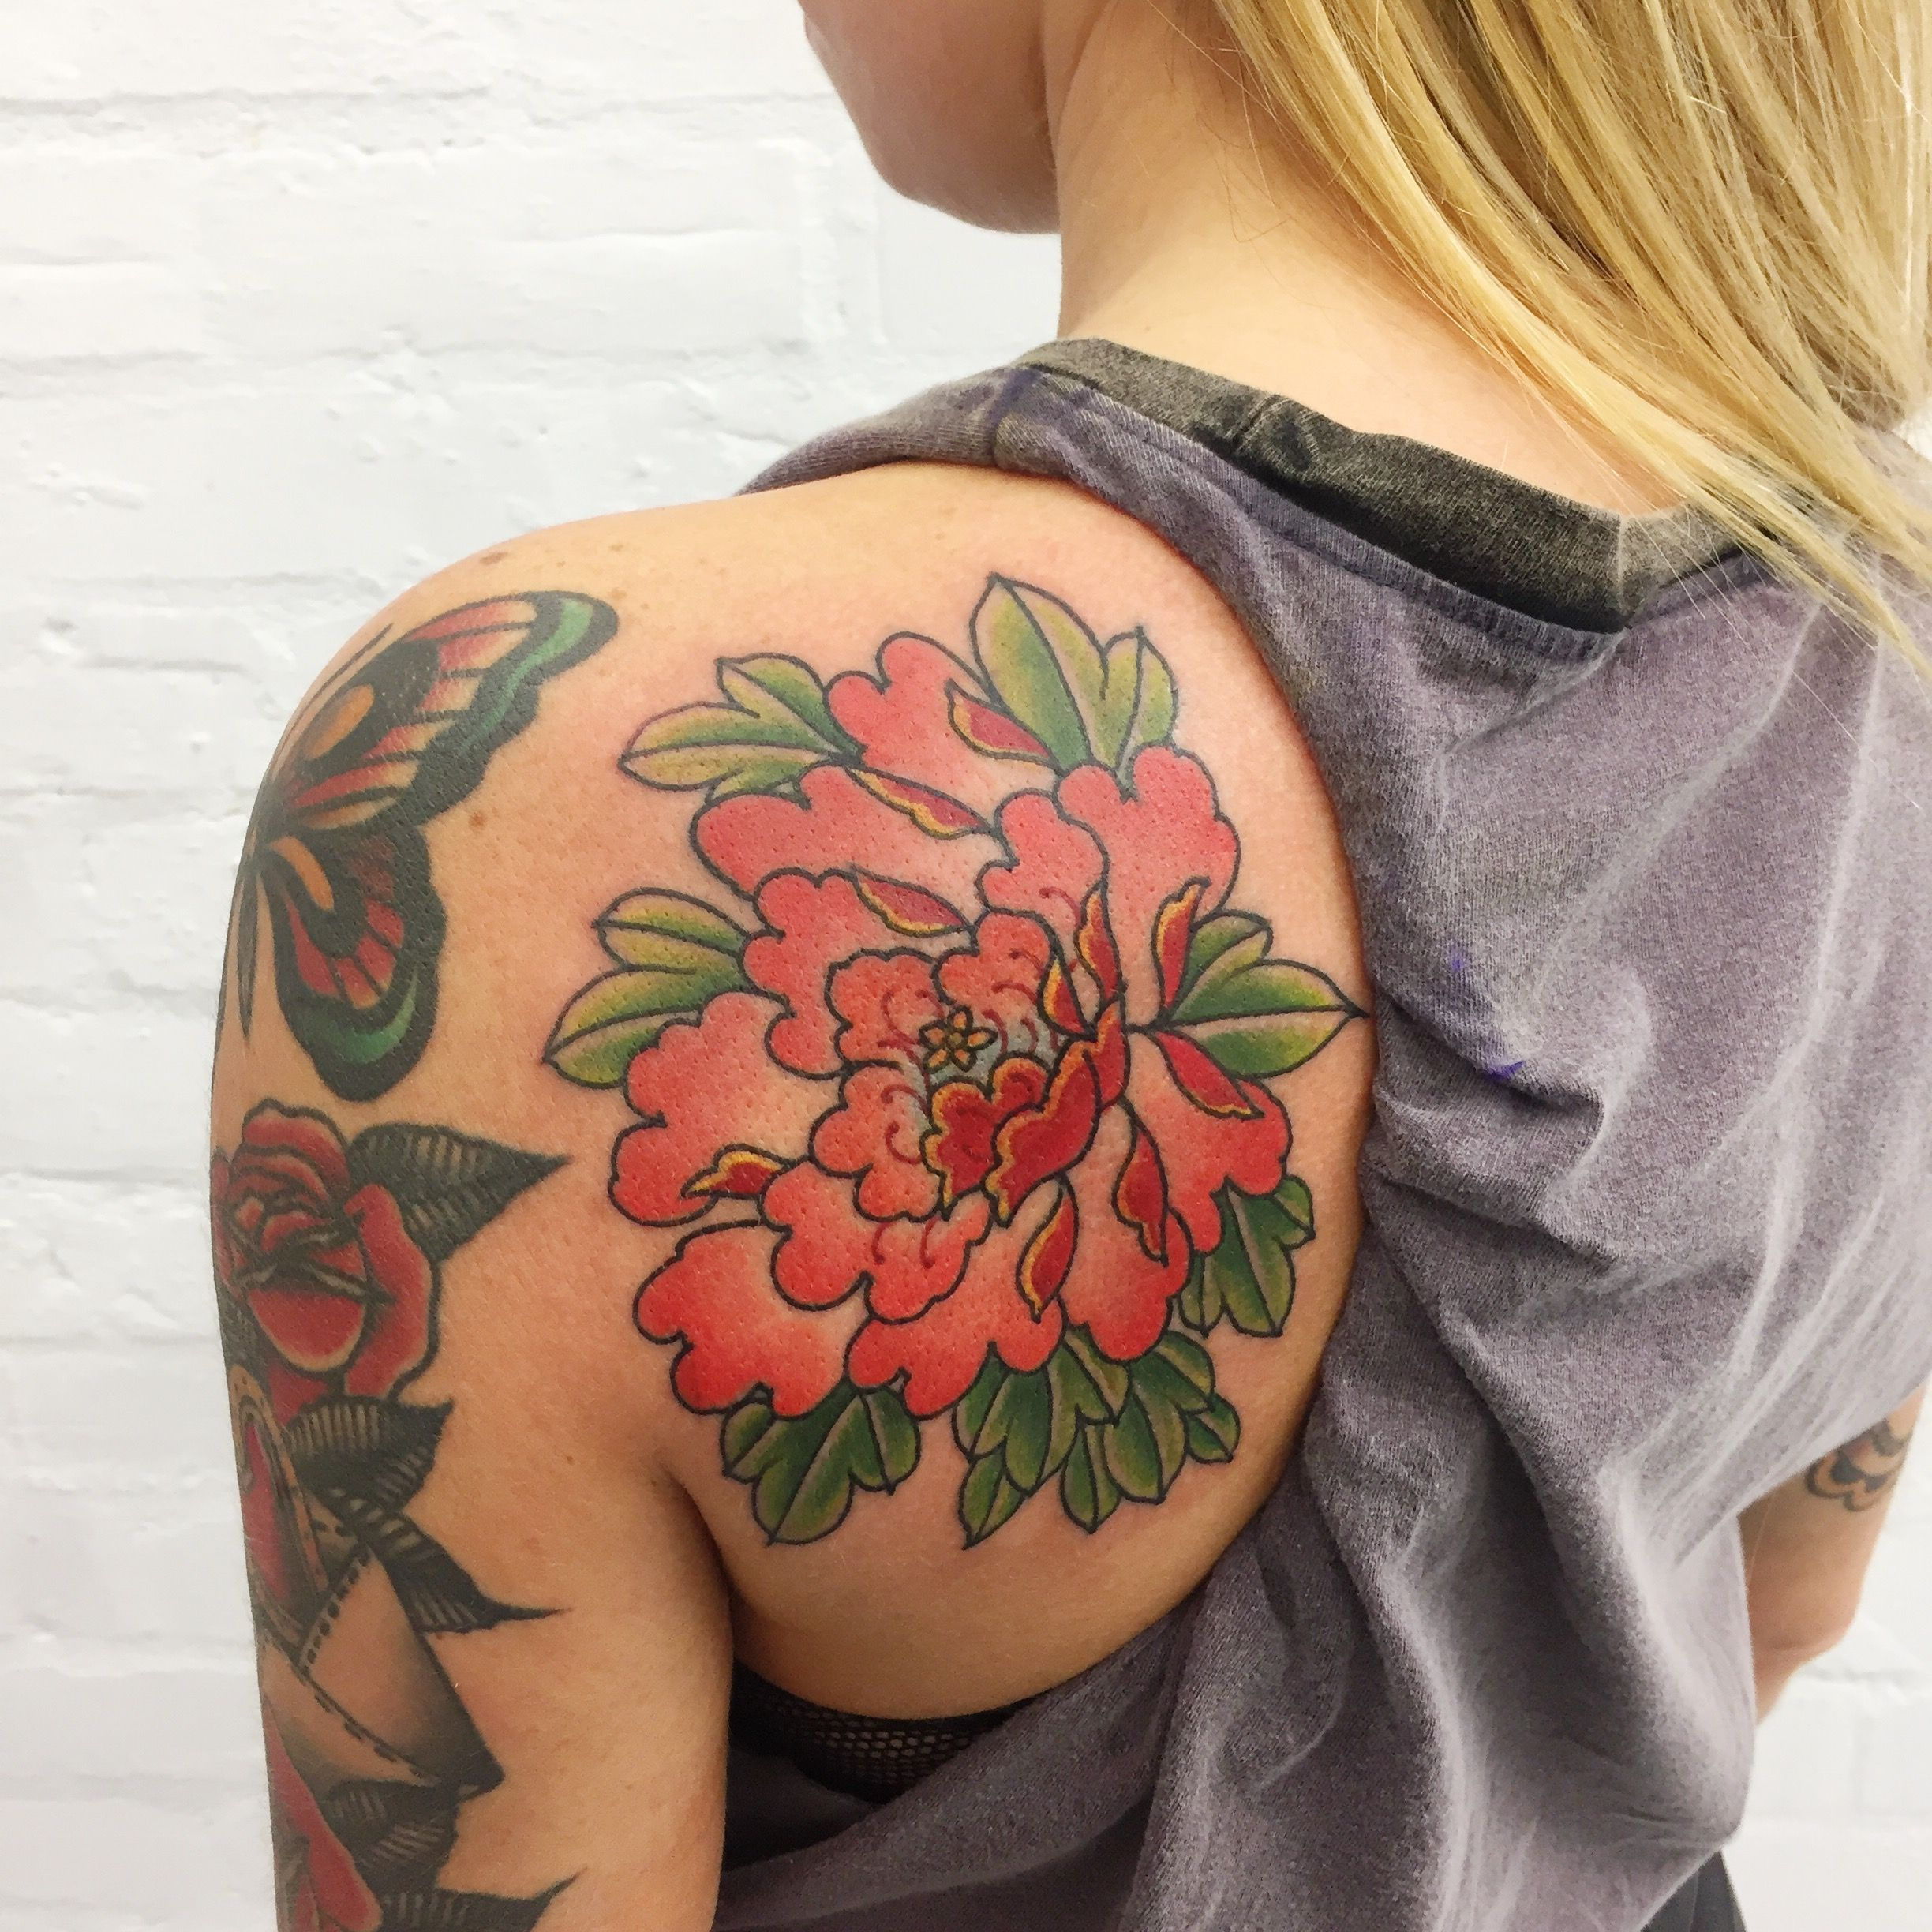 traditional japanese peony tattoo done by tomtom sunsettattoonz t a t. Black Bedroom Furniture Sets. Home Design Ideas